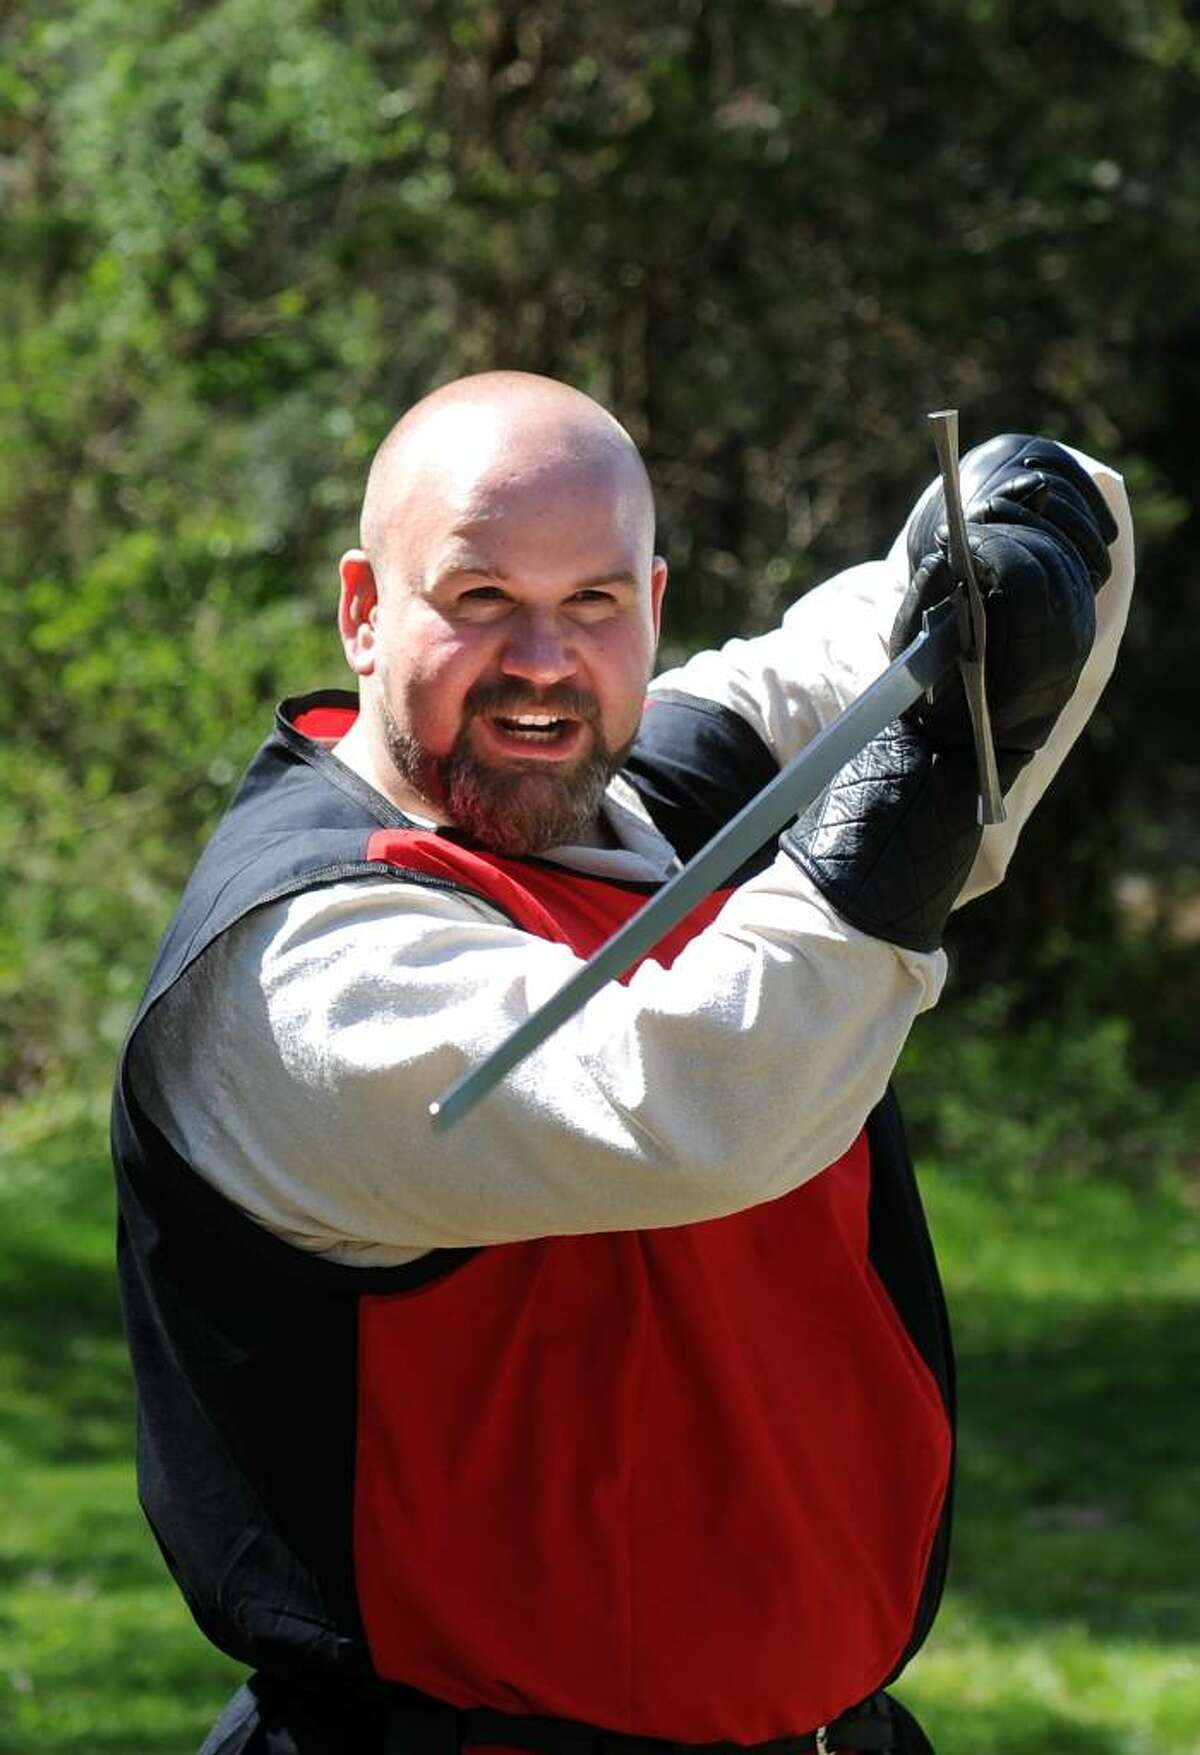 Rob Kelly, of Waterbury, an instructor with Selohaar Fechtschule in Oxford, leads a two-handed sword demonstration during the 12th annual Beltaine Festival at Schreiber's Farm in Oxford.